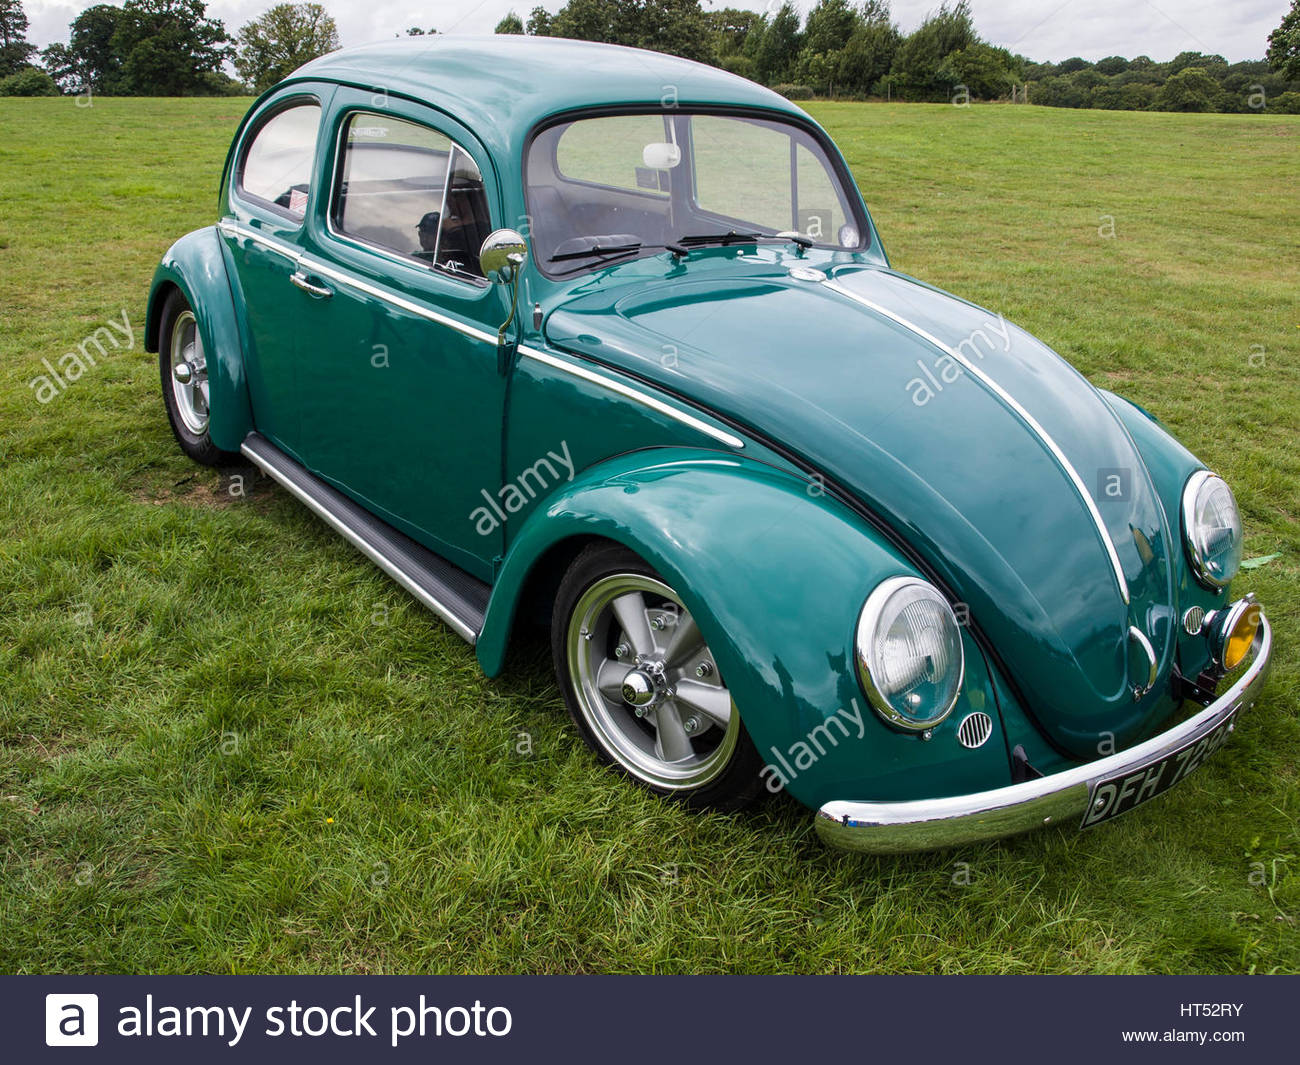 vw iron gadgets bug made classier volkswagen through a beetle see wrought classic